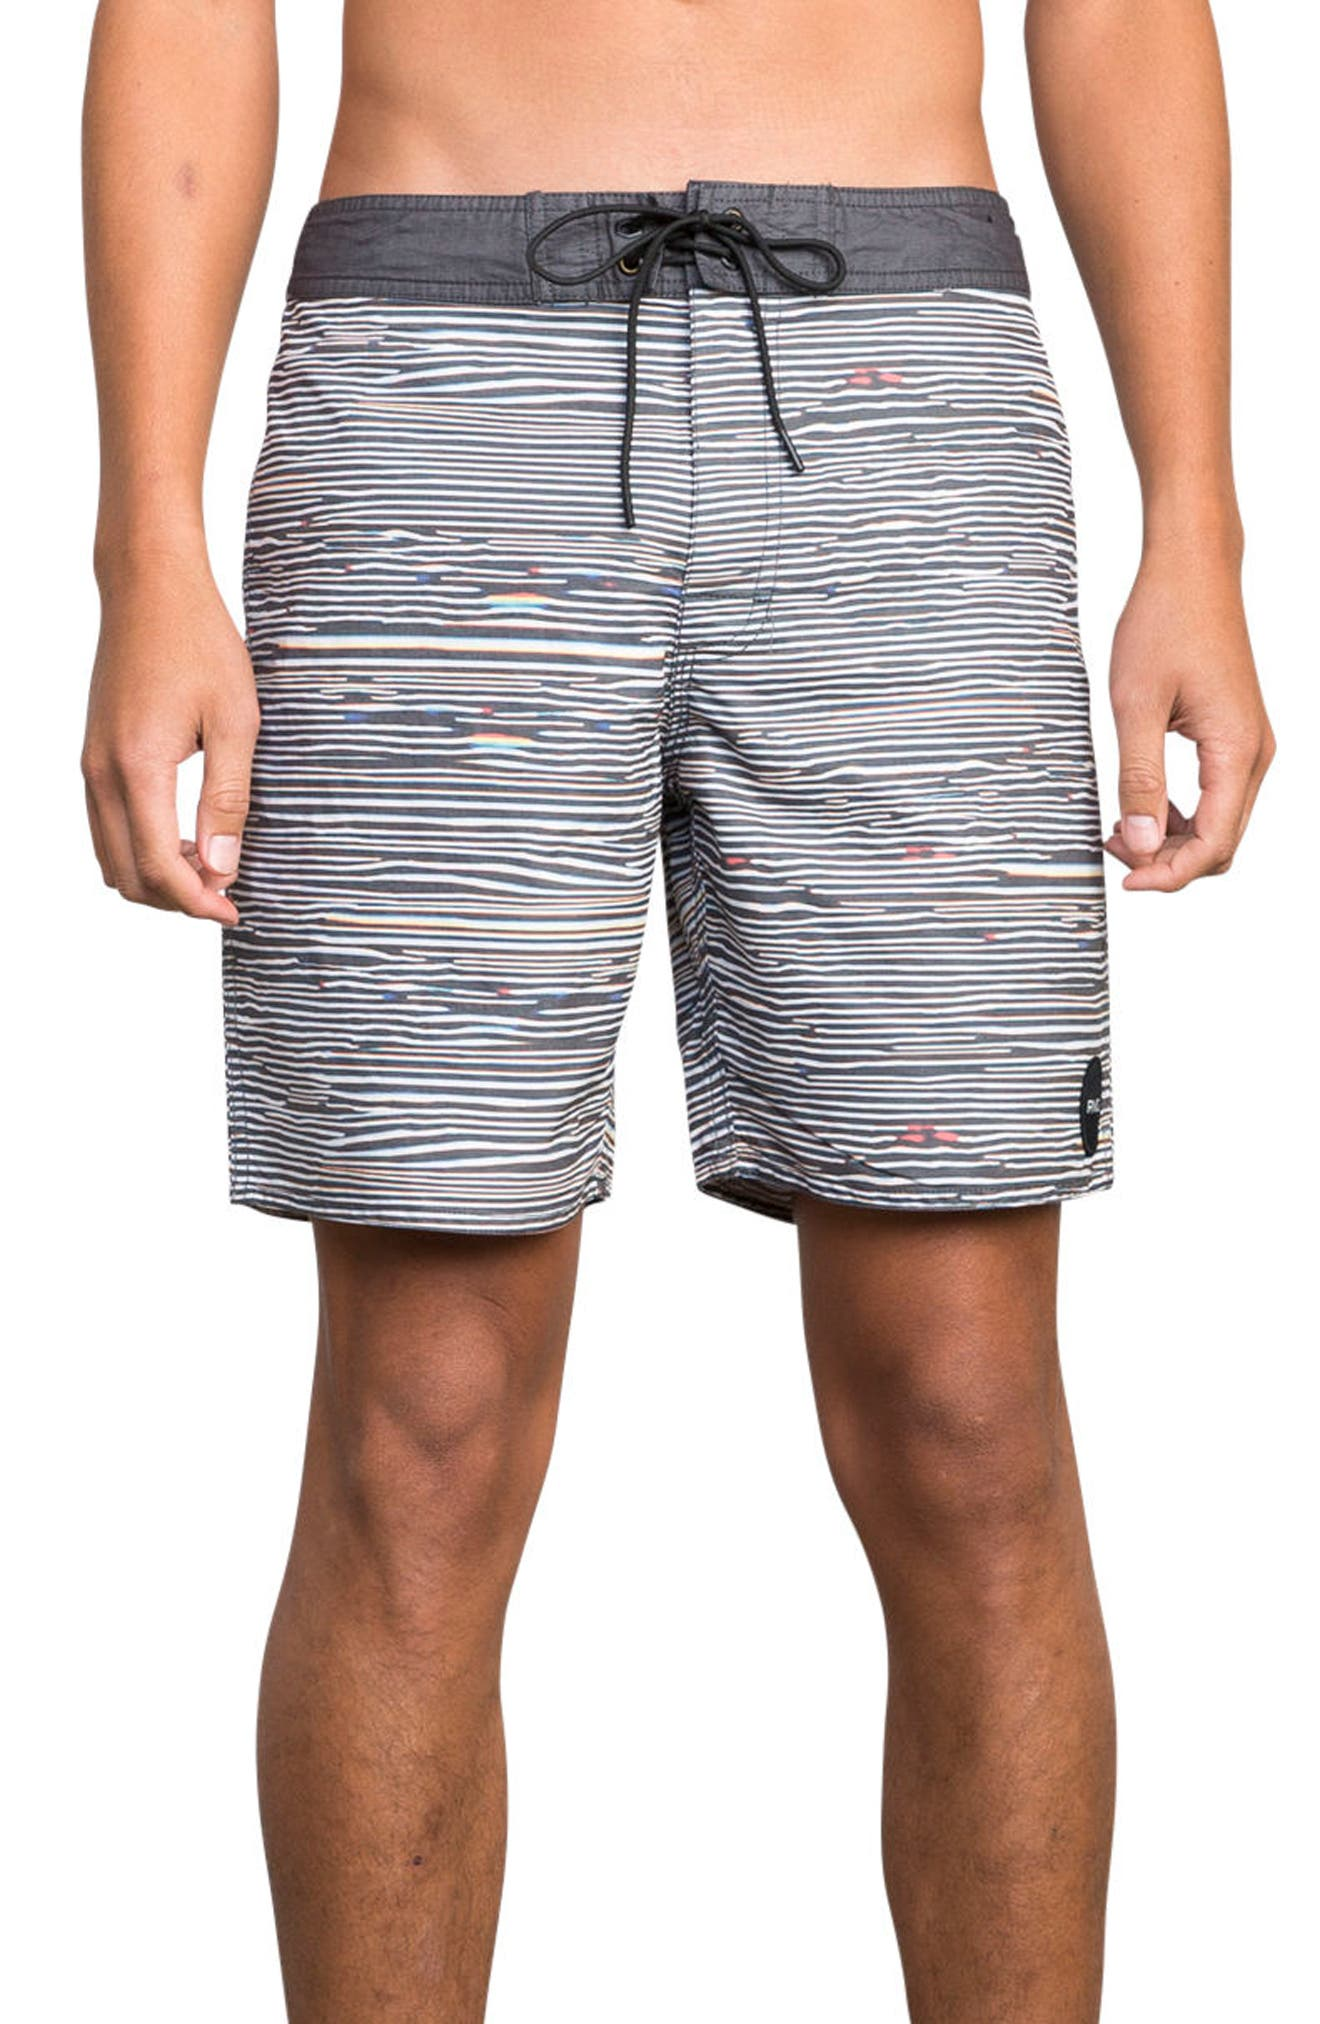 Flinch Board Shorts,                             Main thumbnail 1, color,                             020